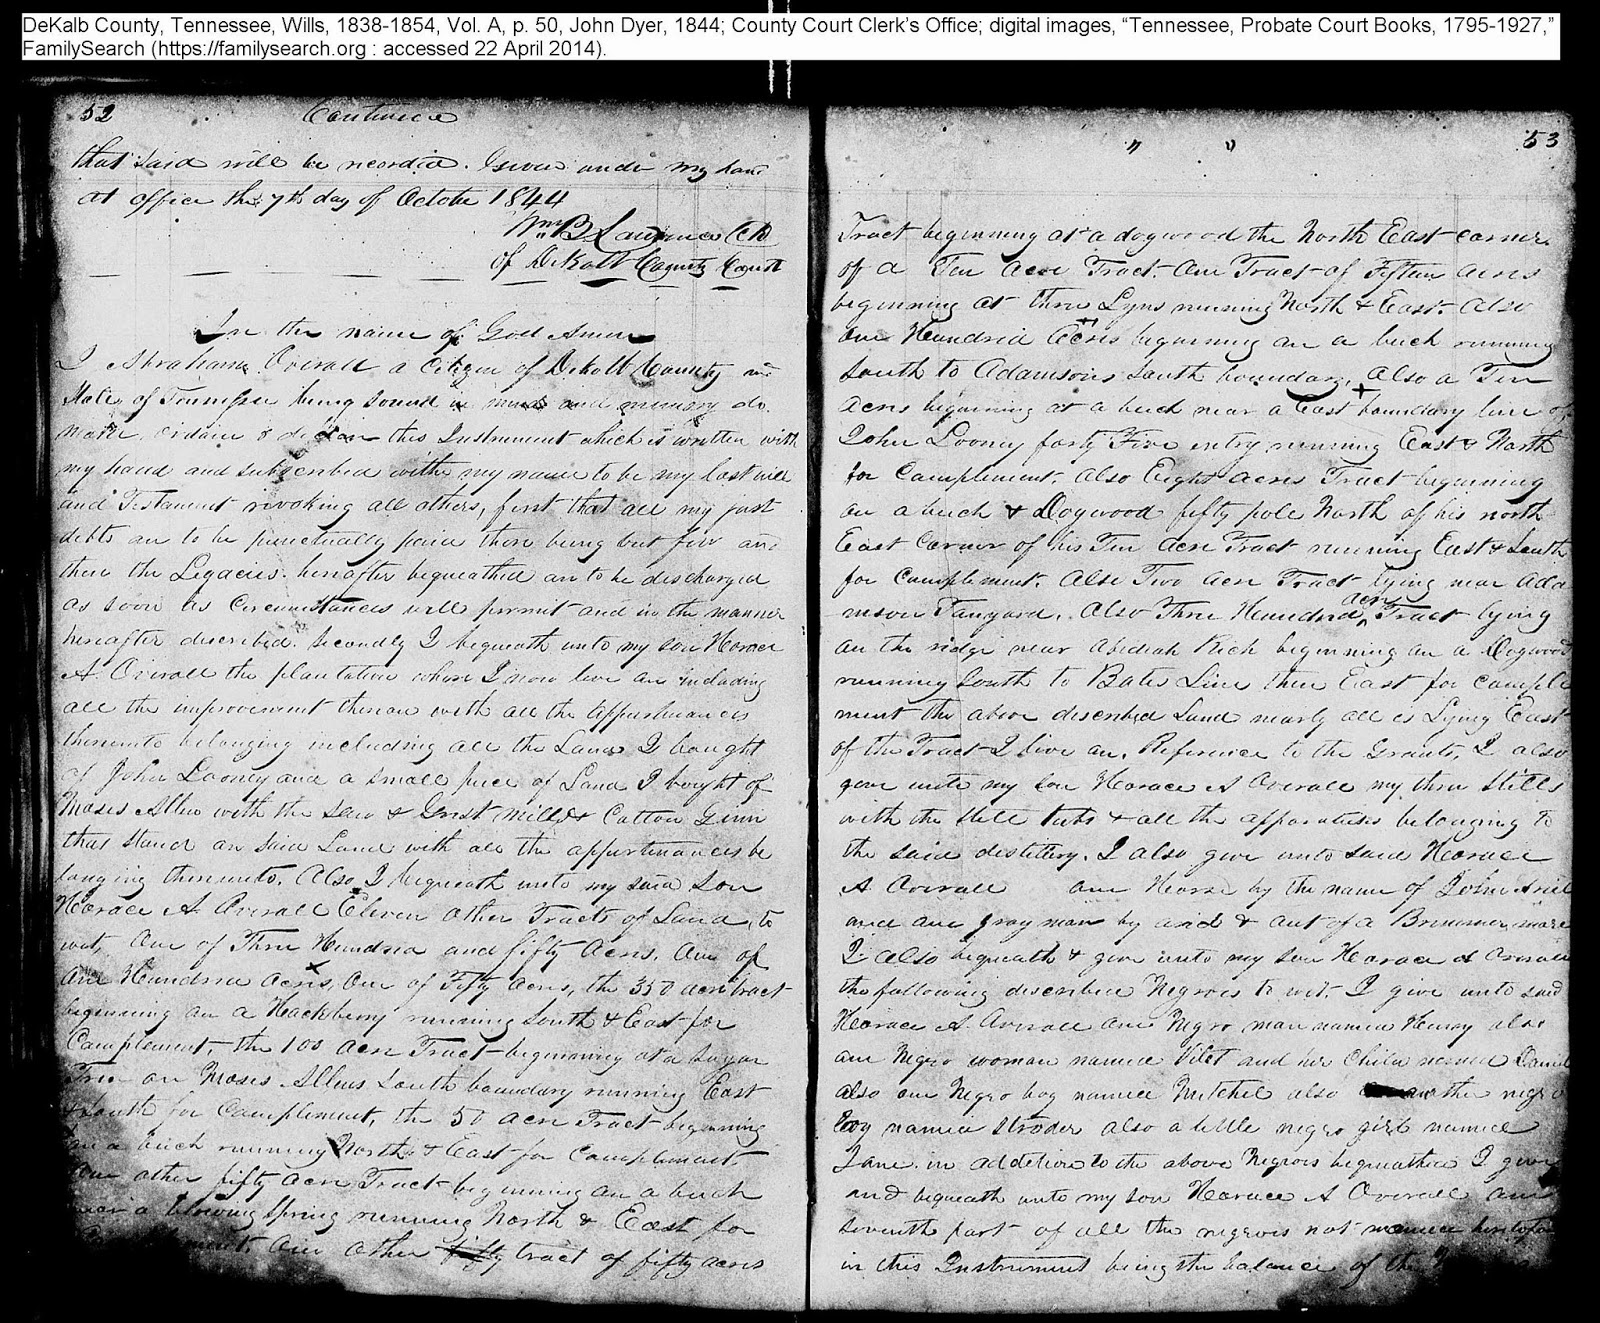 Will Of John Dyer, Dekalb Co, Tn, 1844, P 53 Welcome To